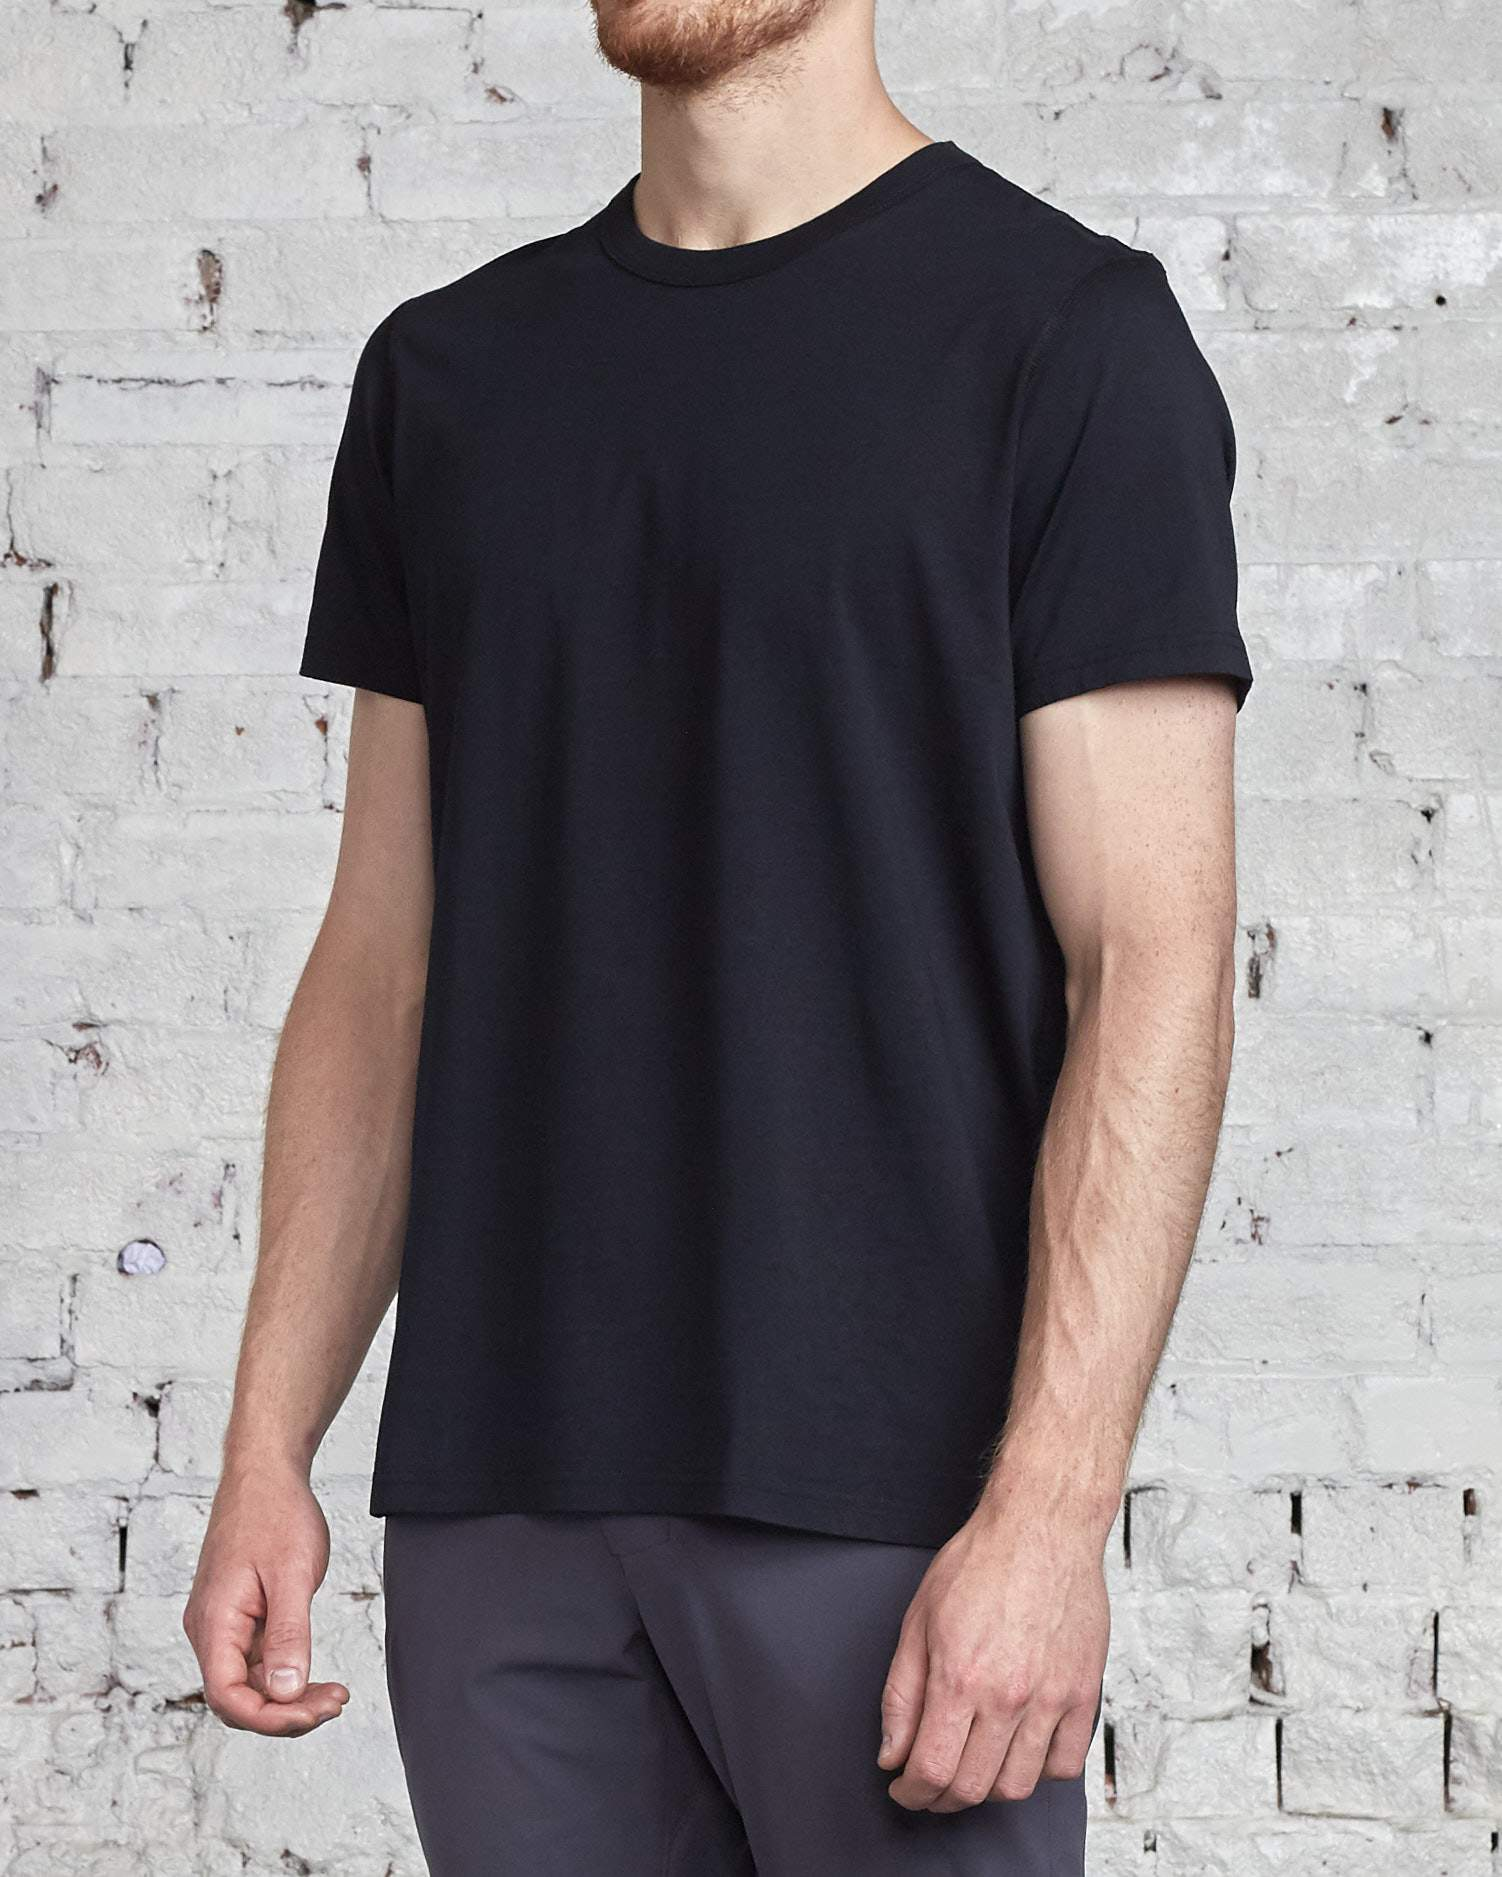 Reigning Champ 2-Pack T-Shirt Black-LESS 17